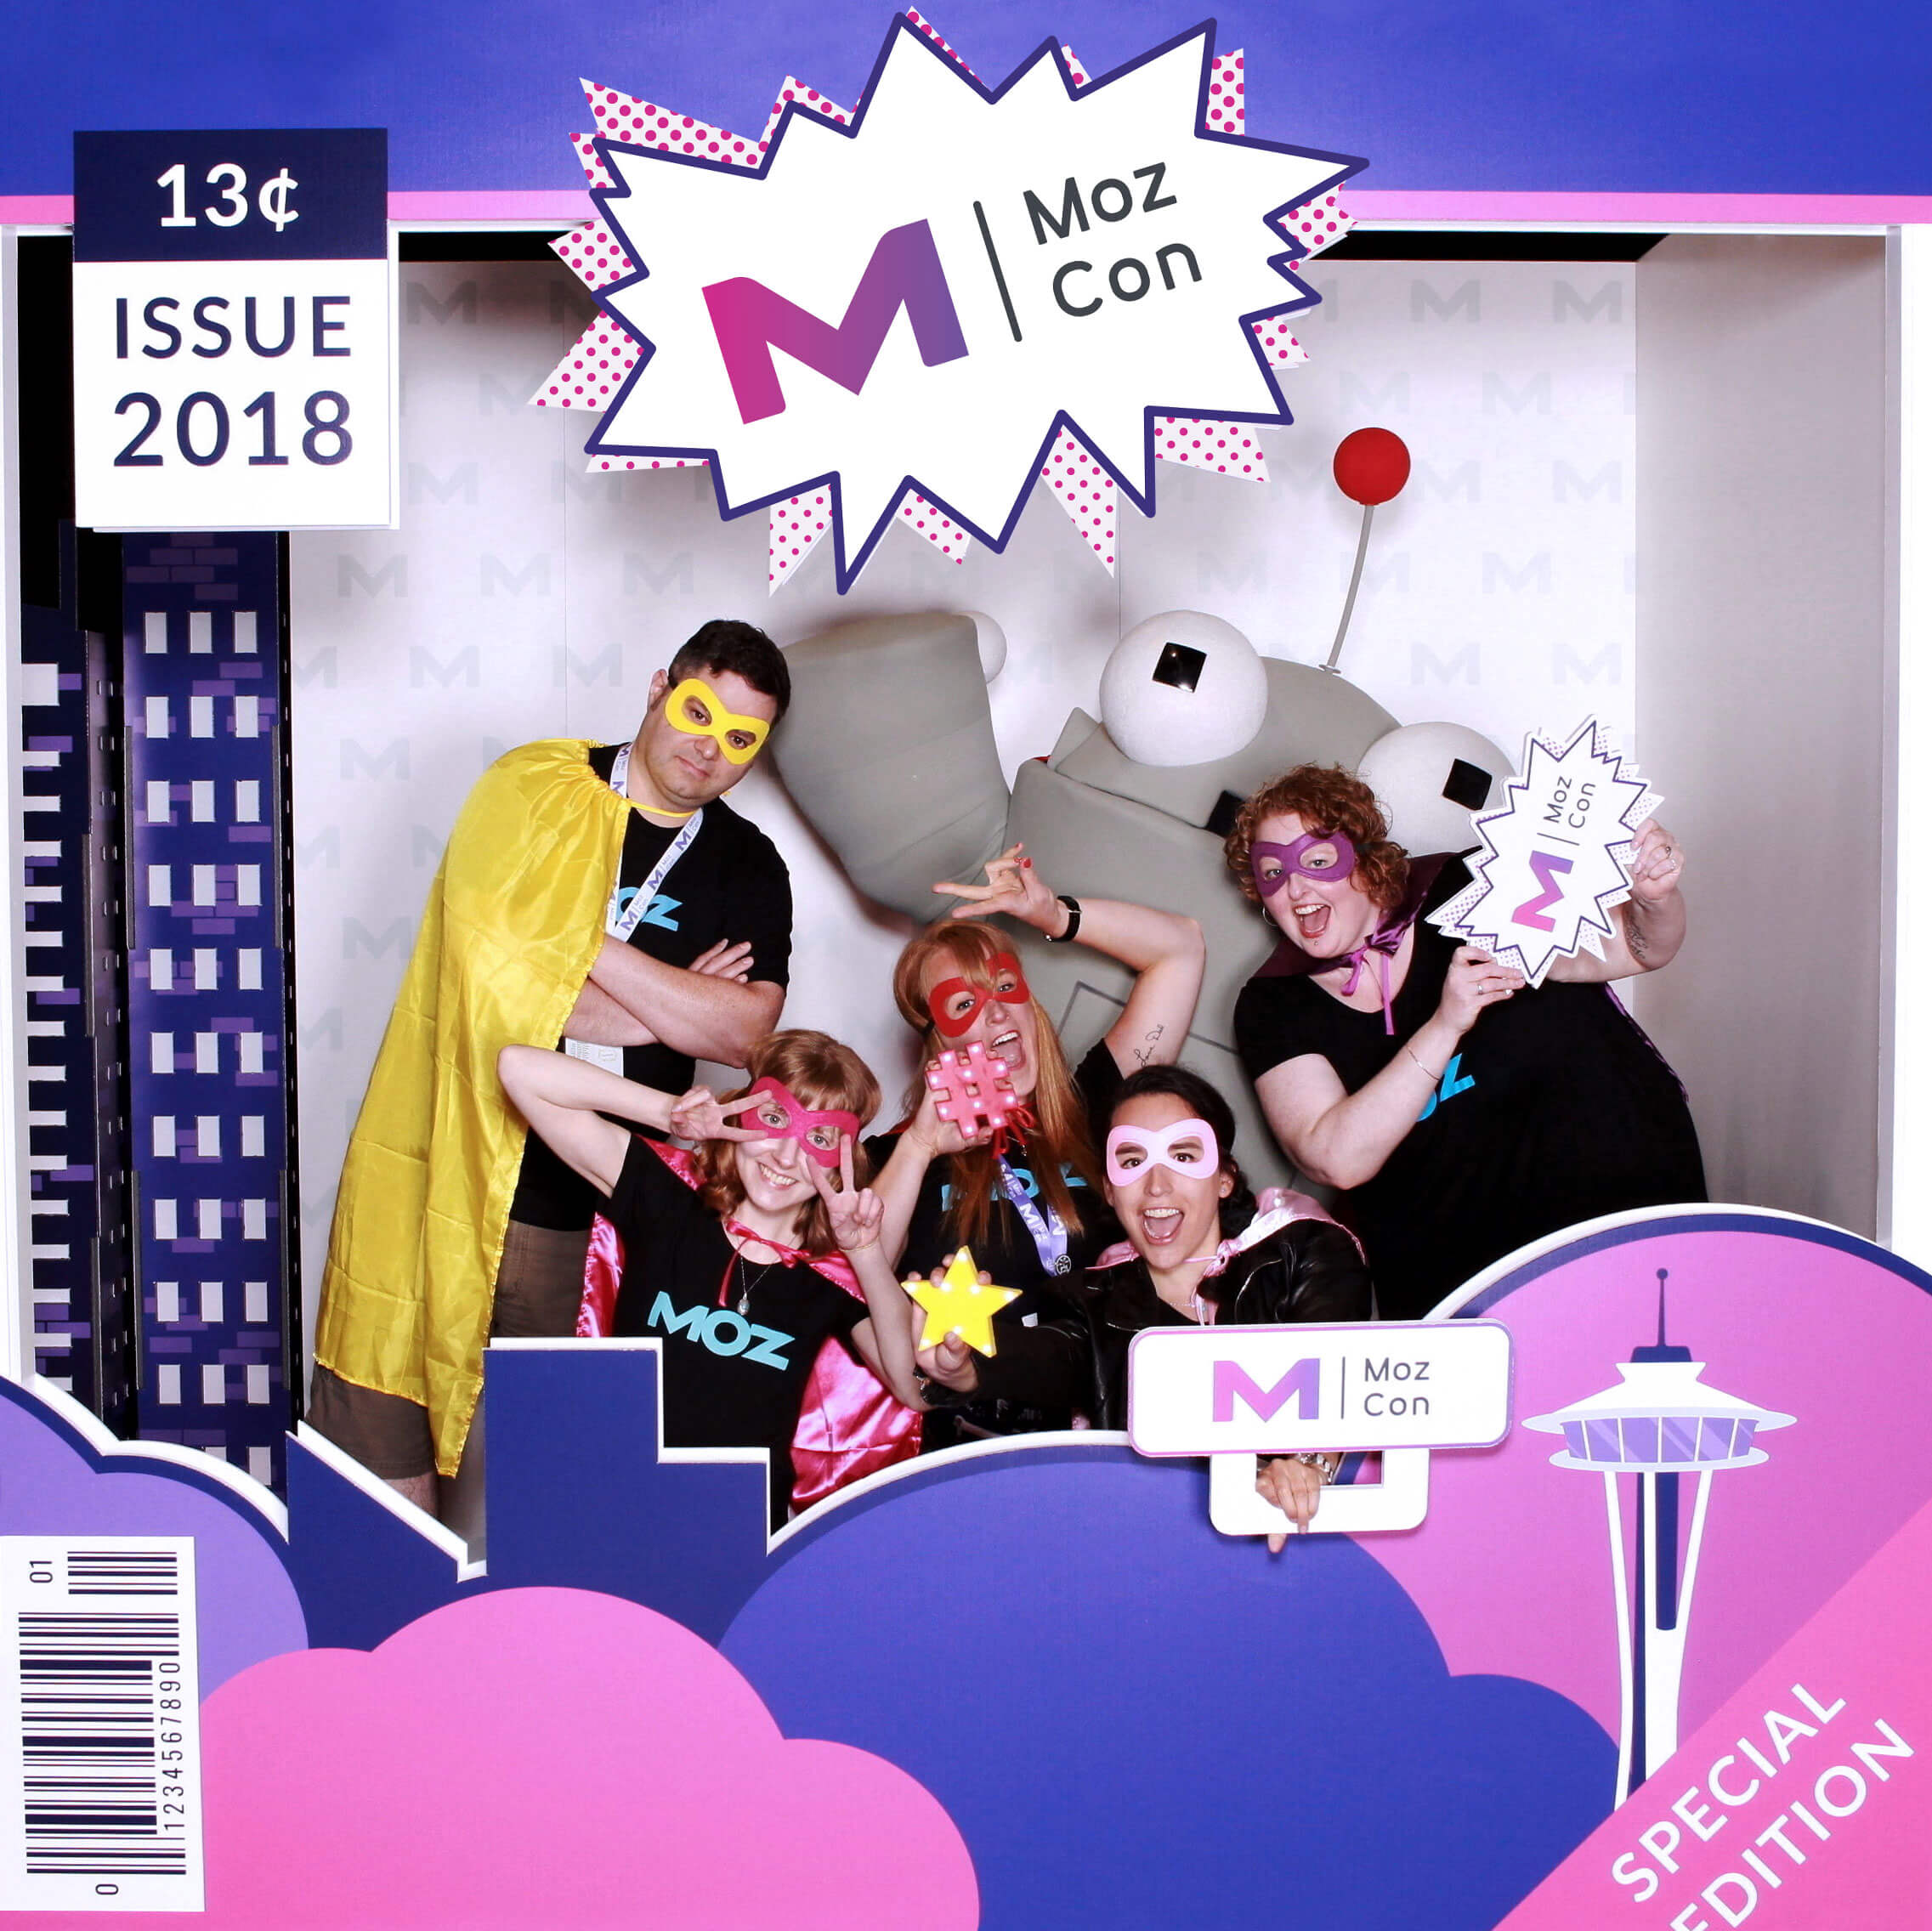 The Moz Design Team having some fun with Super Roger in the comic book-themed photo booth. Photo booth design by me, and photo booth executed with the help of SnapBar.